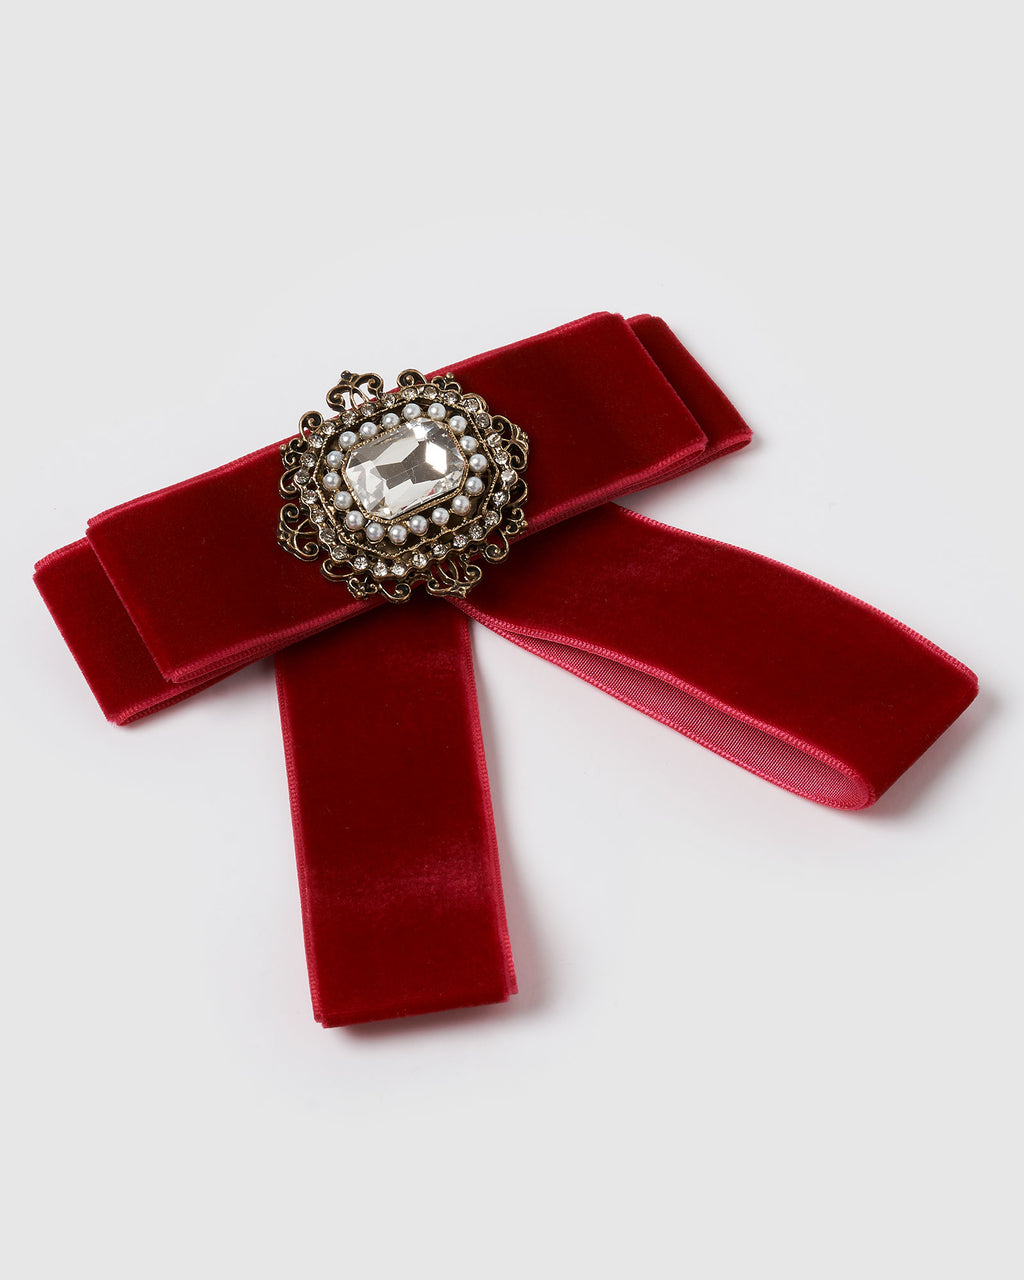 Izoa Regal Brooch Red Velvet